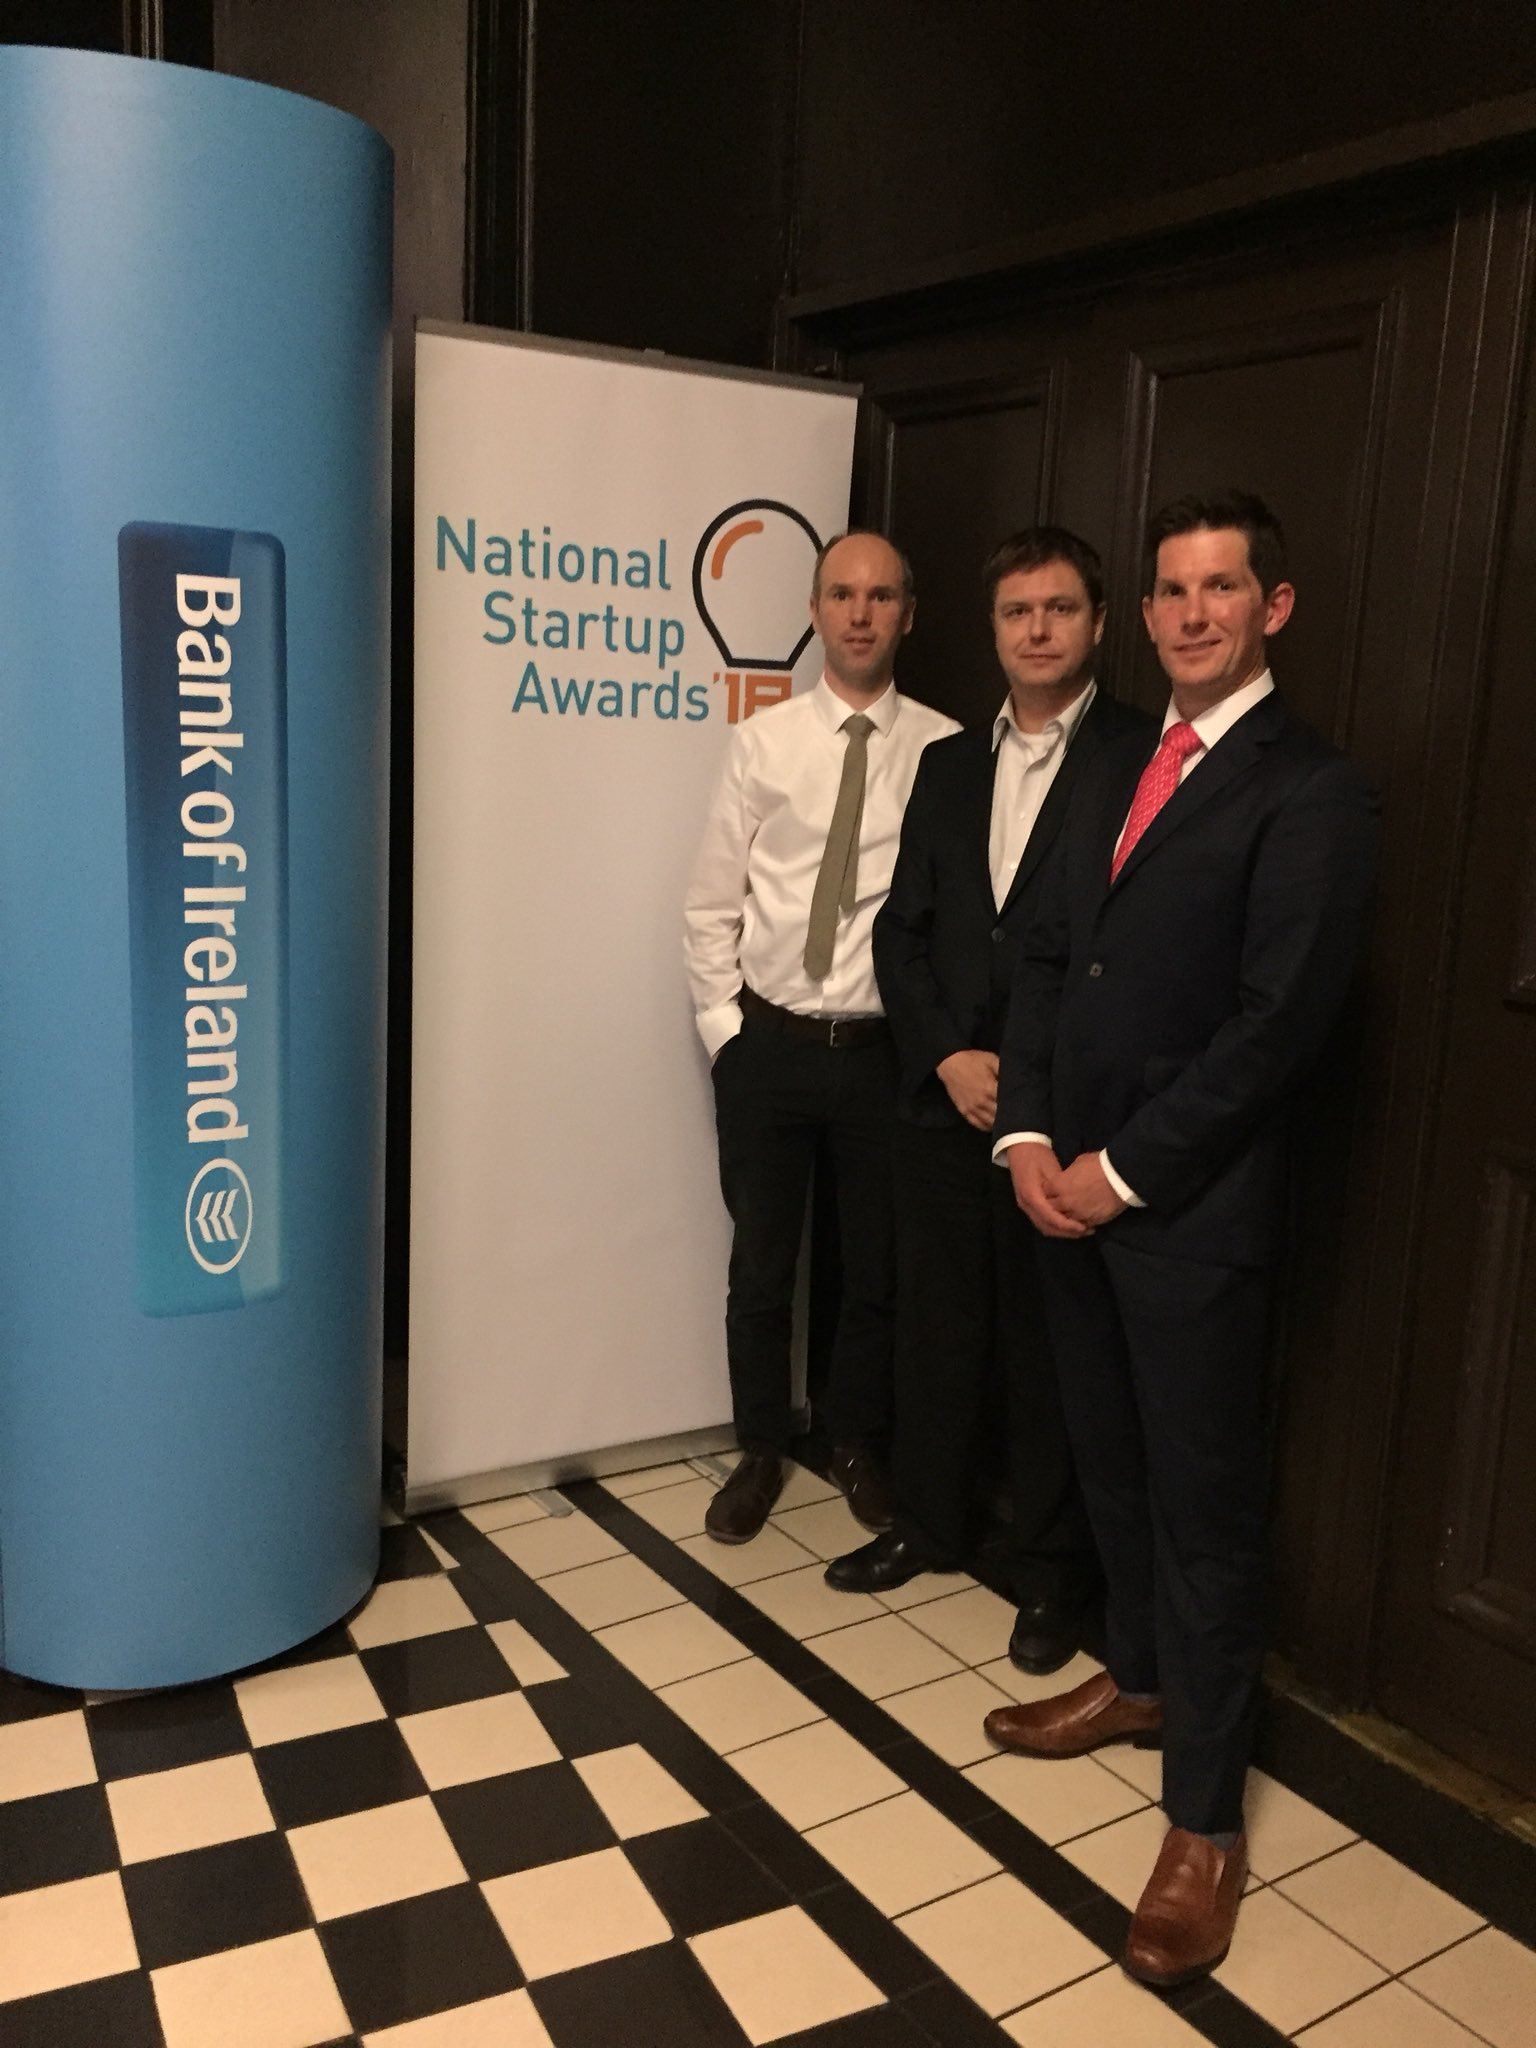 Capt Kris Vansteenkiste, Captain Darach O'Comhrai and F/O Justin Luke Perry of Frequency at the National Startup Awards in Dublin